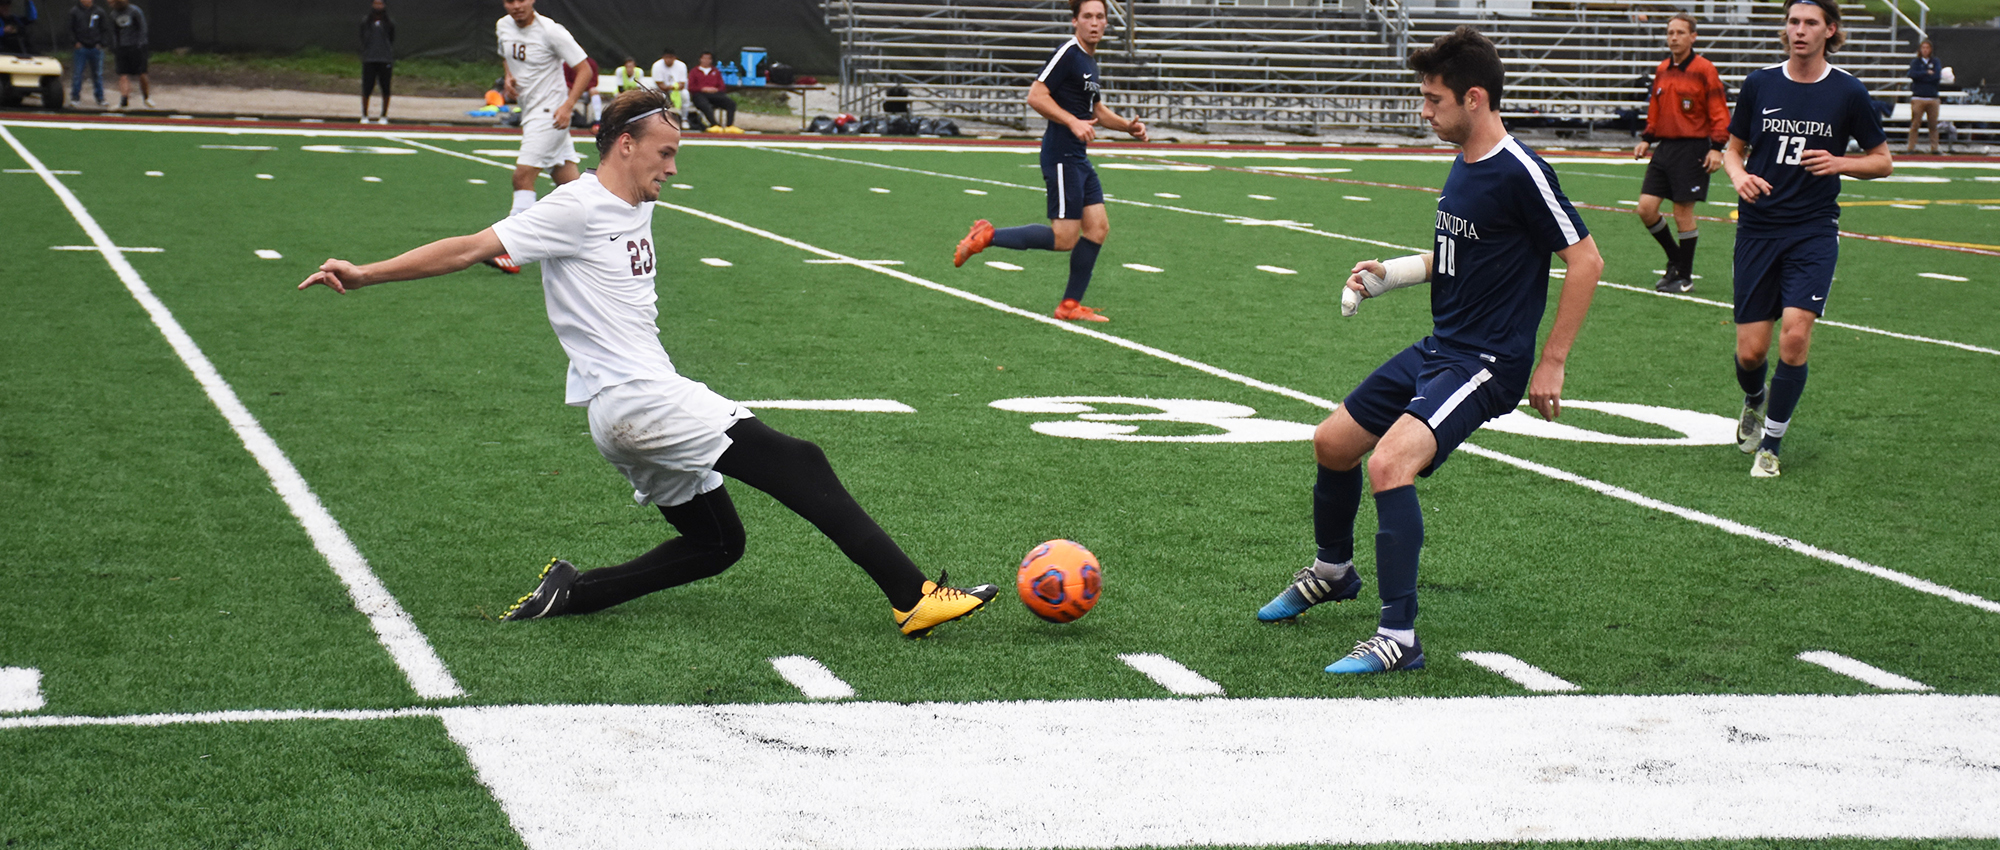 Principia Shuts Out Red Devils, 4-0